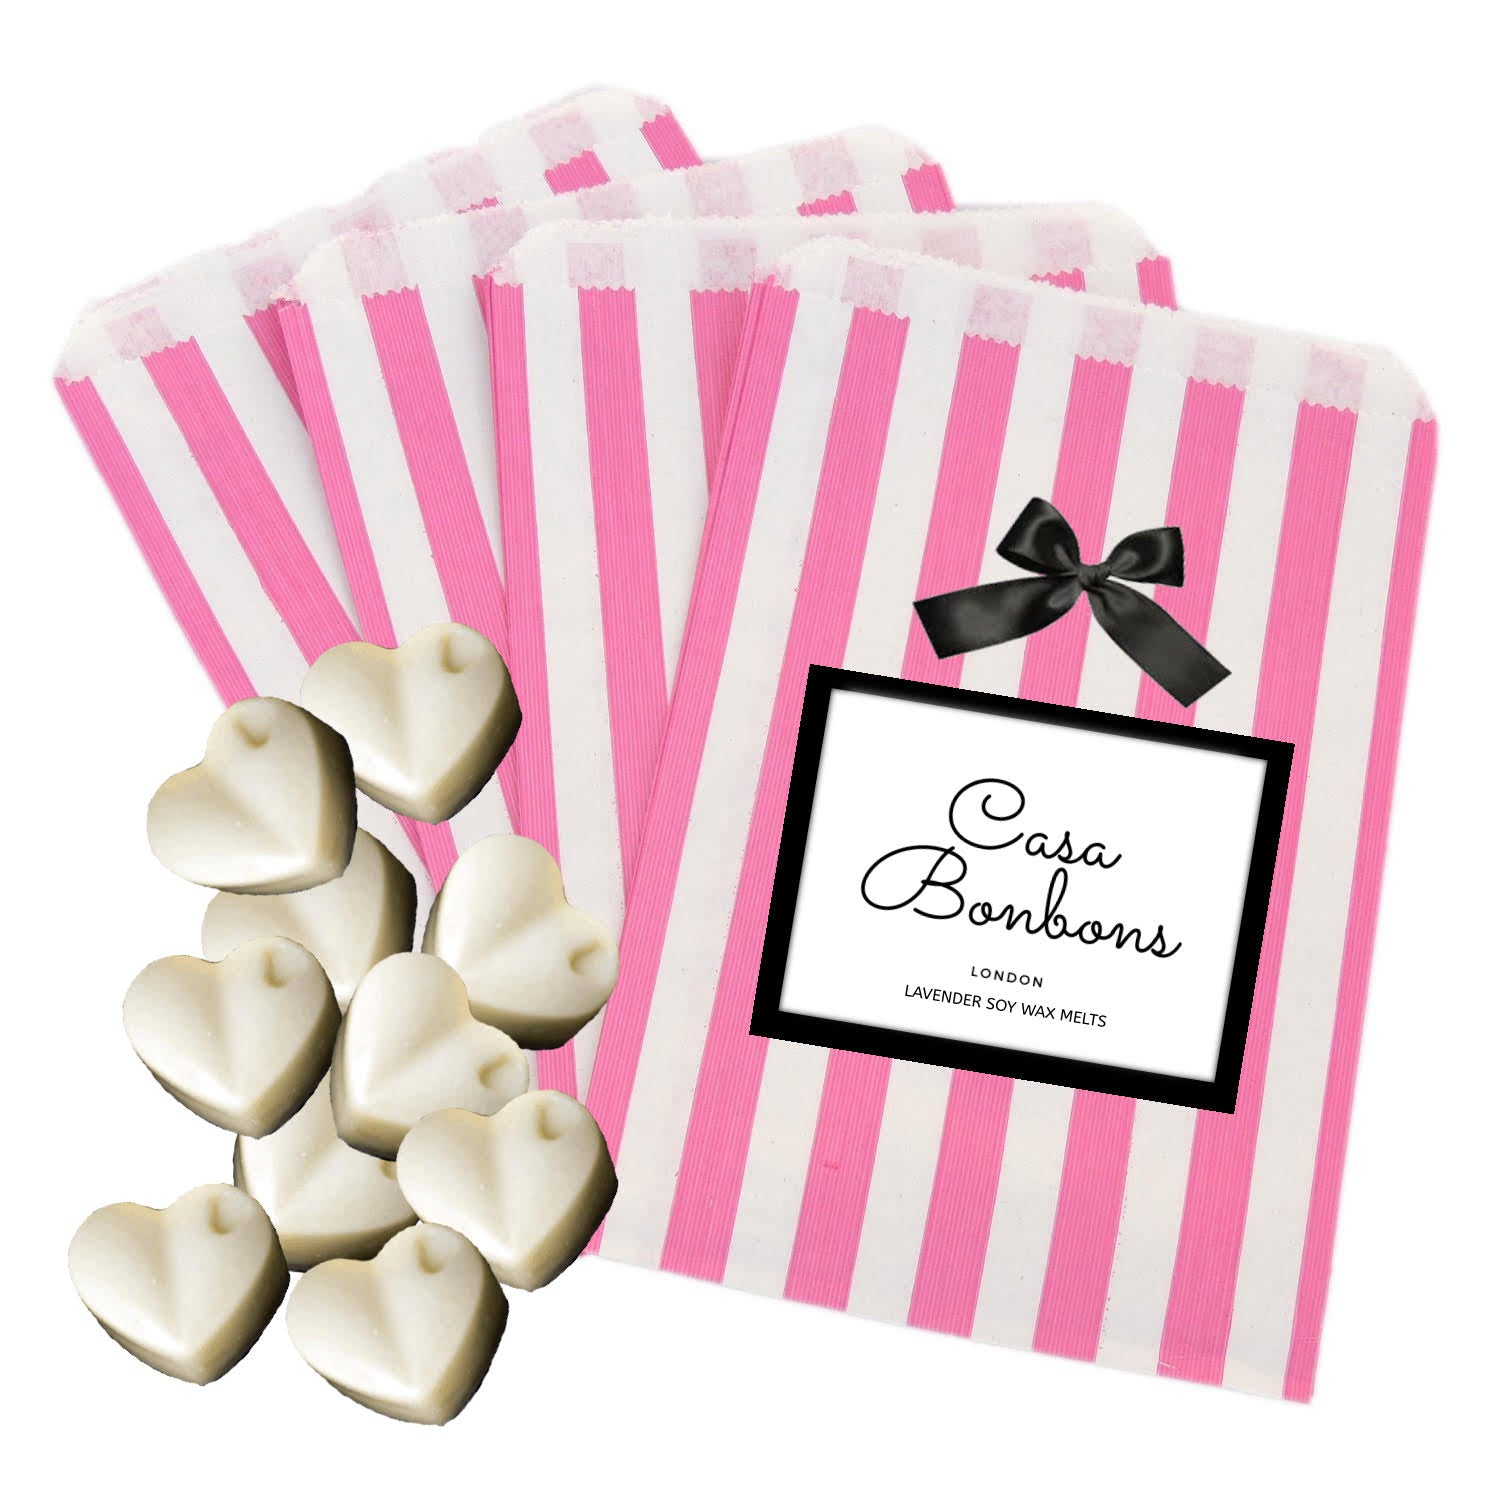 Lavender gentle scented heart style Soy Wax Melts, PRE-ORDER delivery around 15th of December - natoorio